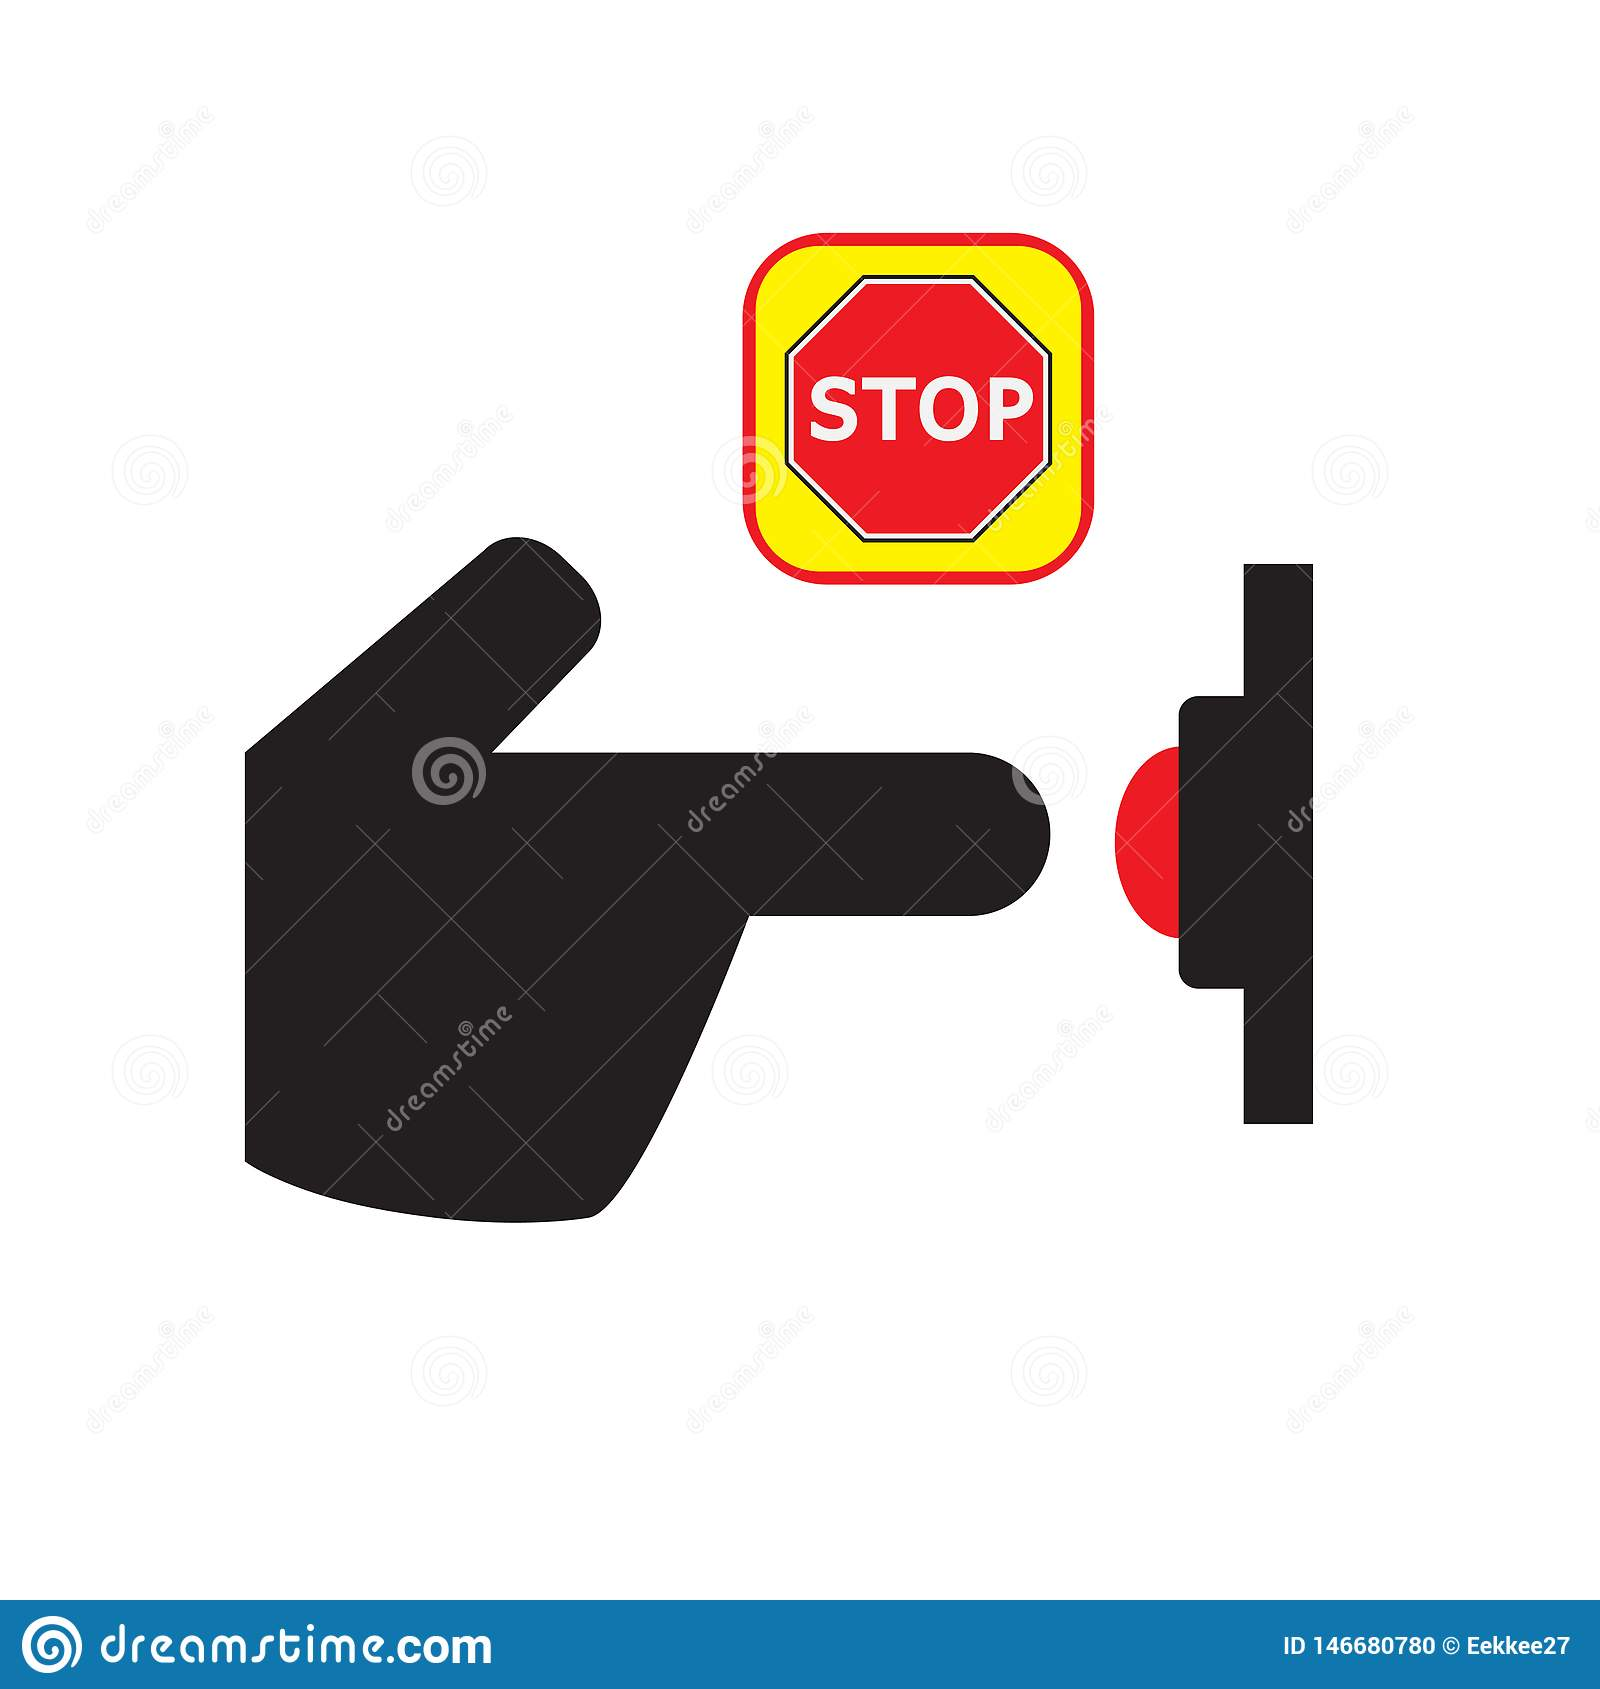 Press stop button icon. hand icon. one click stop